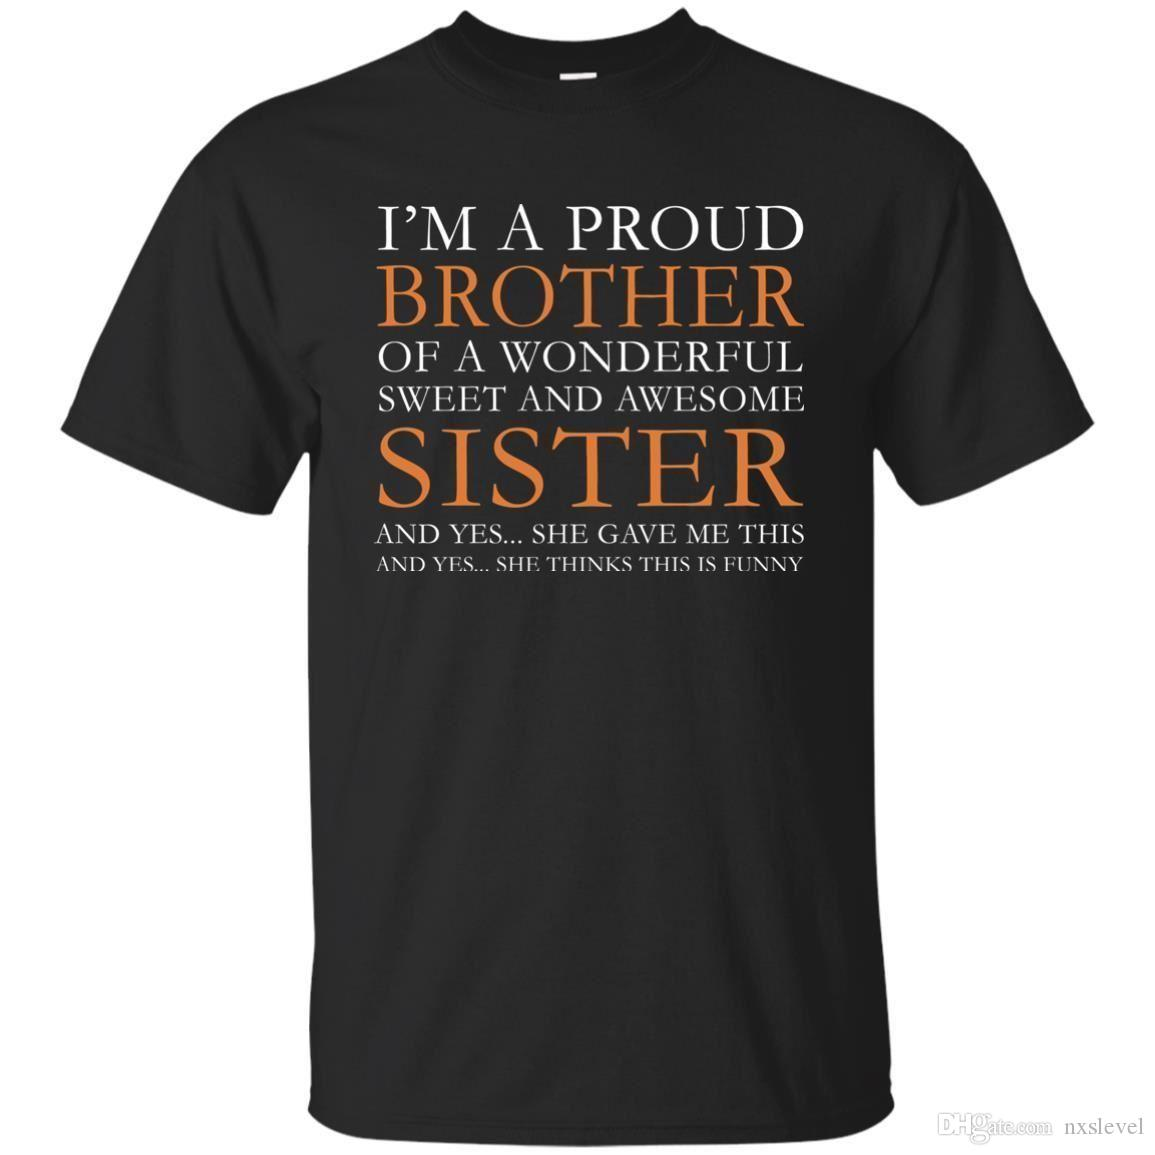 Gift For Brother From Sister Funny Birthday To Design Your Own T Shirts Womens Shirt Nxslevel 1021